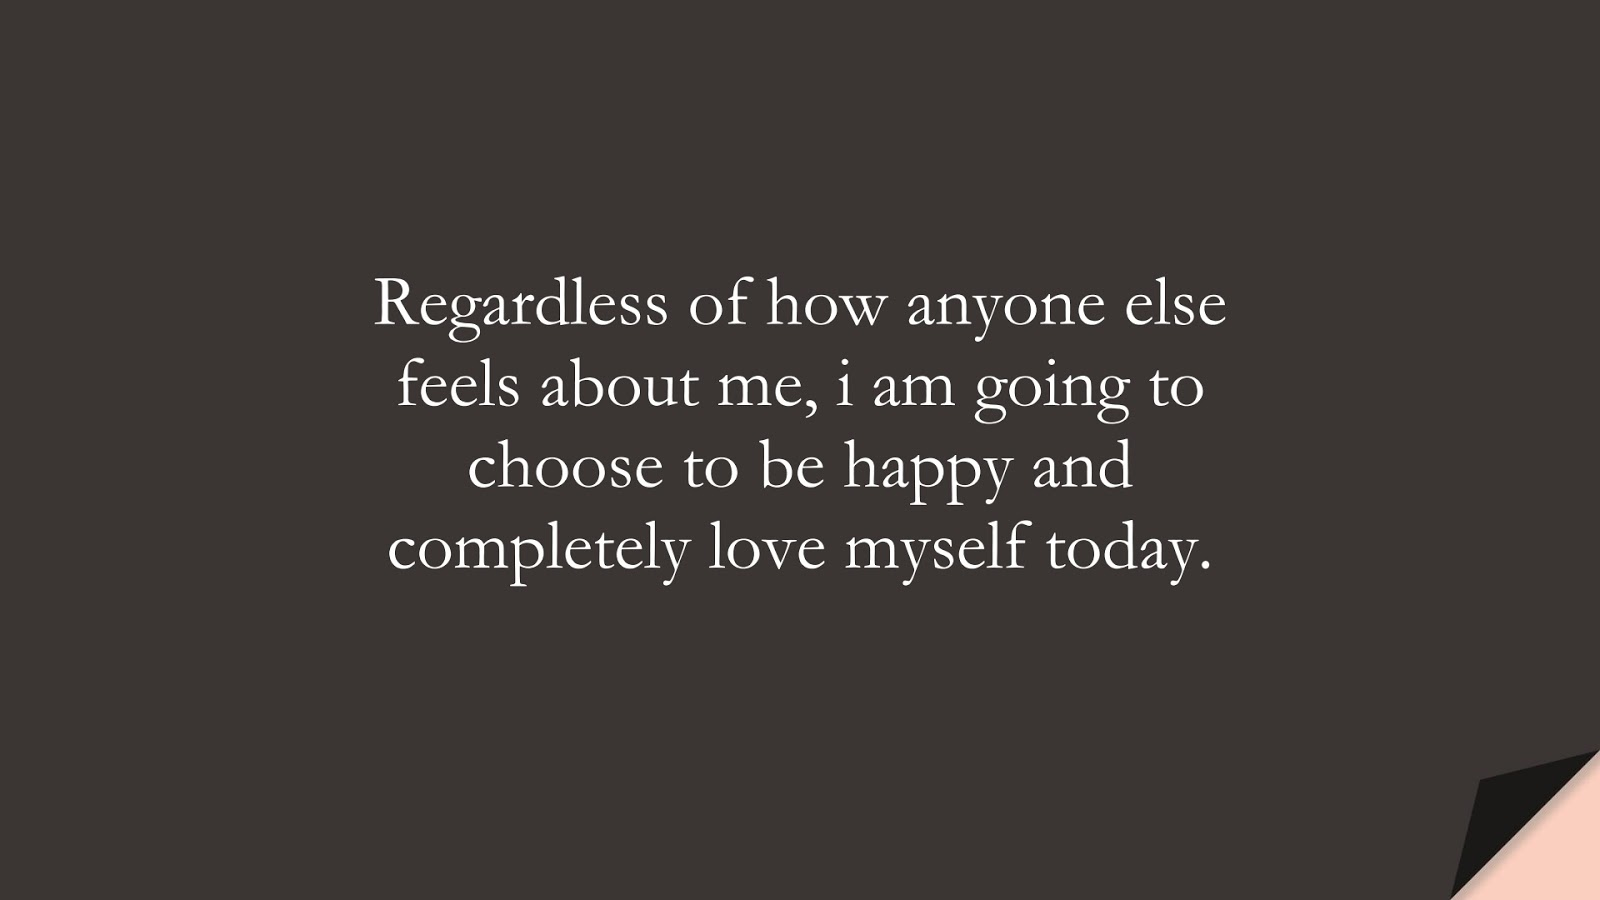 Regardless of how anyone else feels about me, i am going to choose to be happy and completely love myself today.FALSE